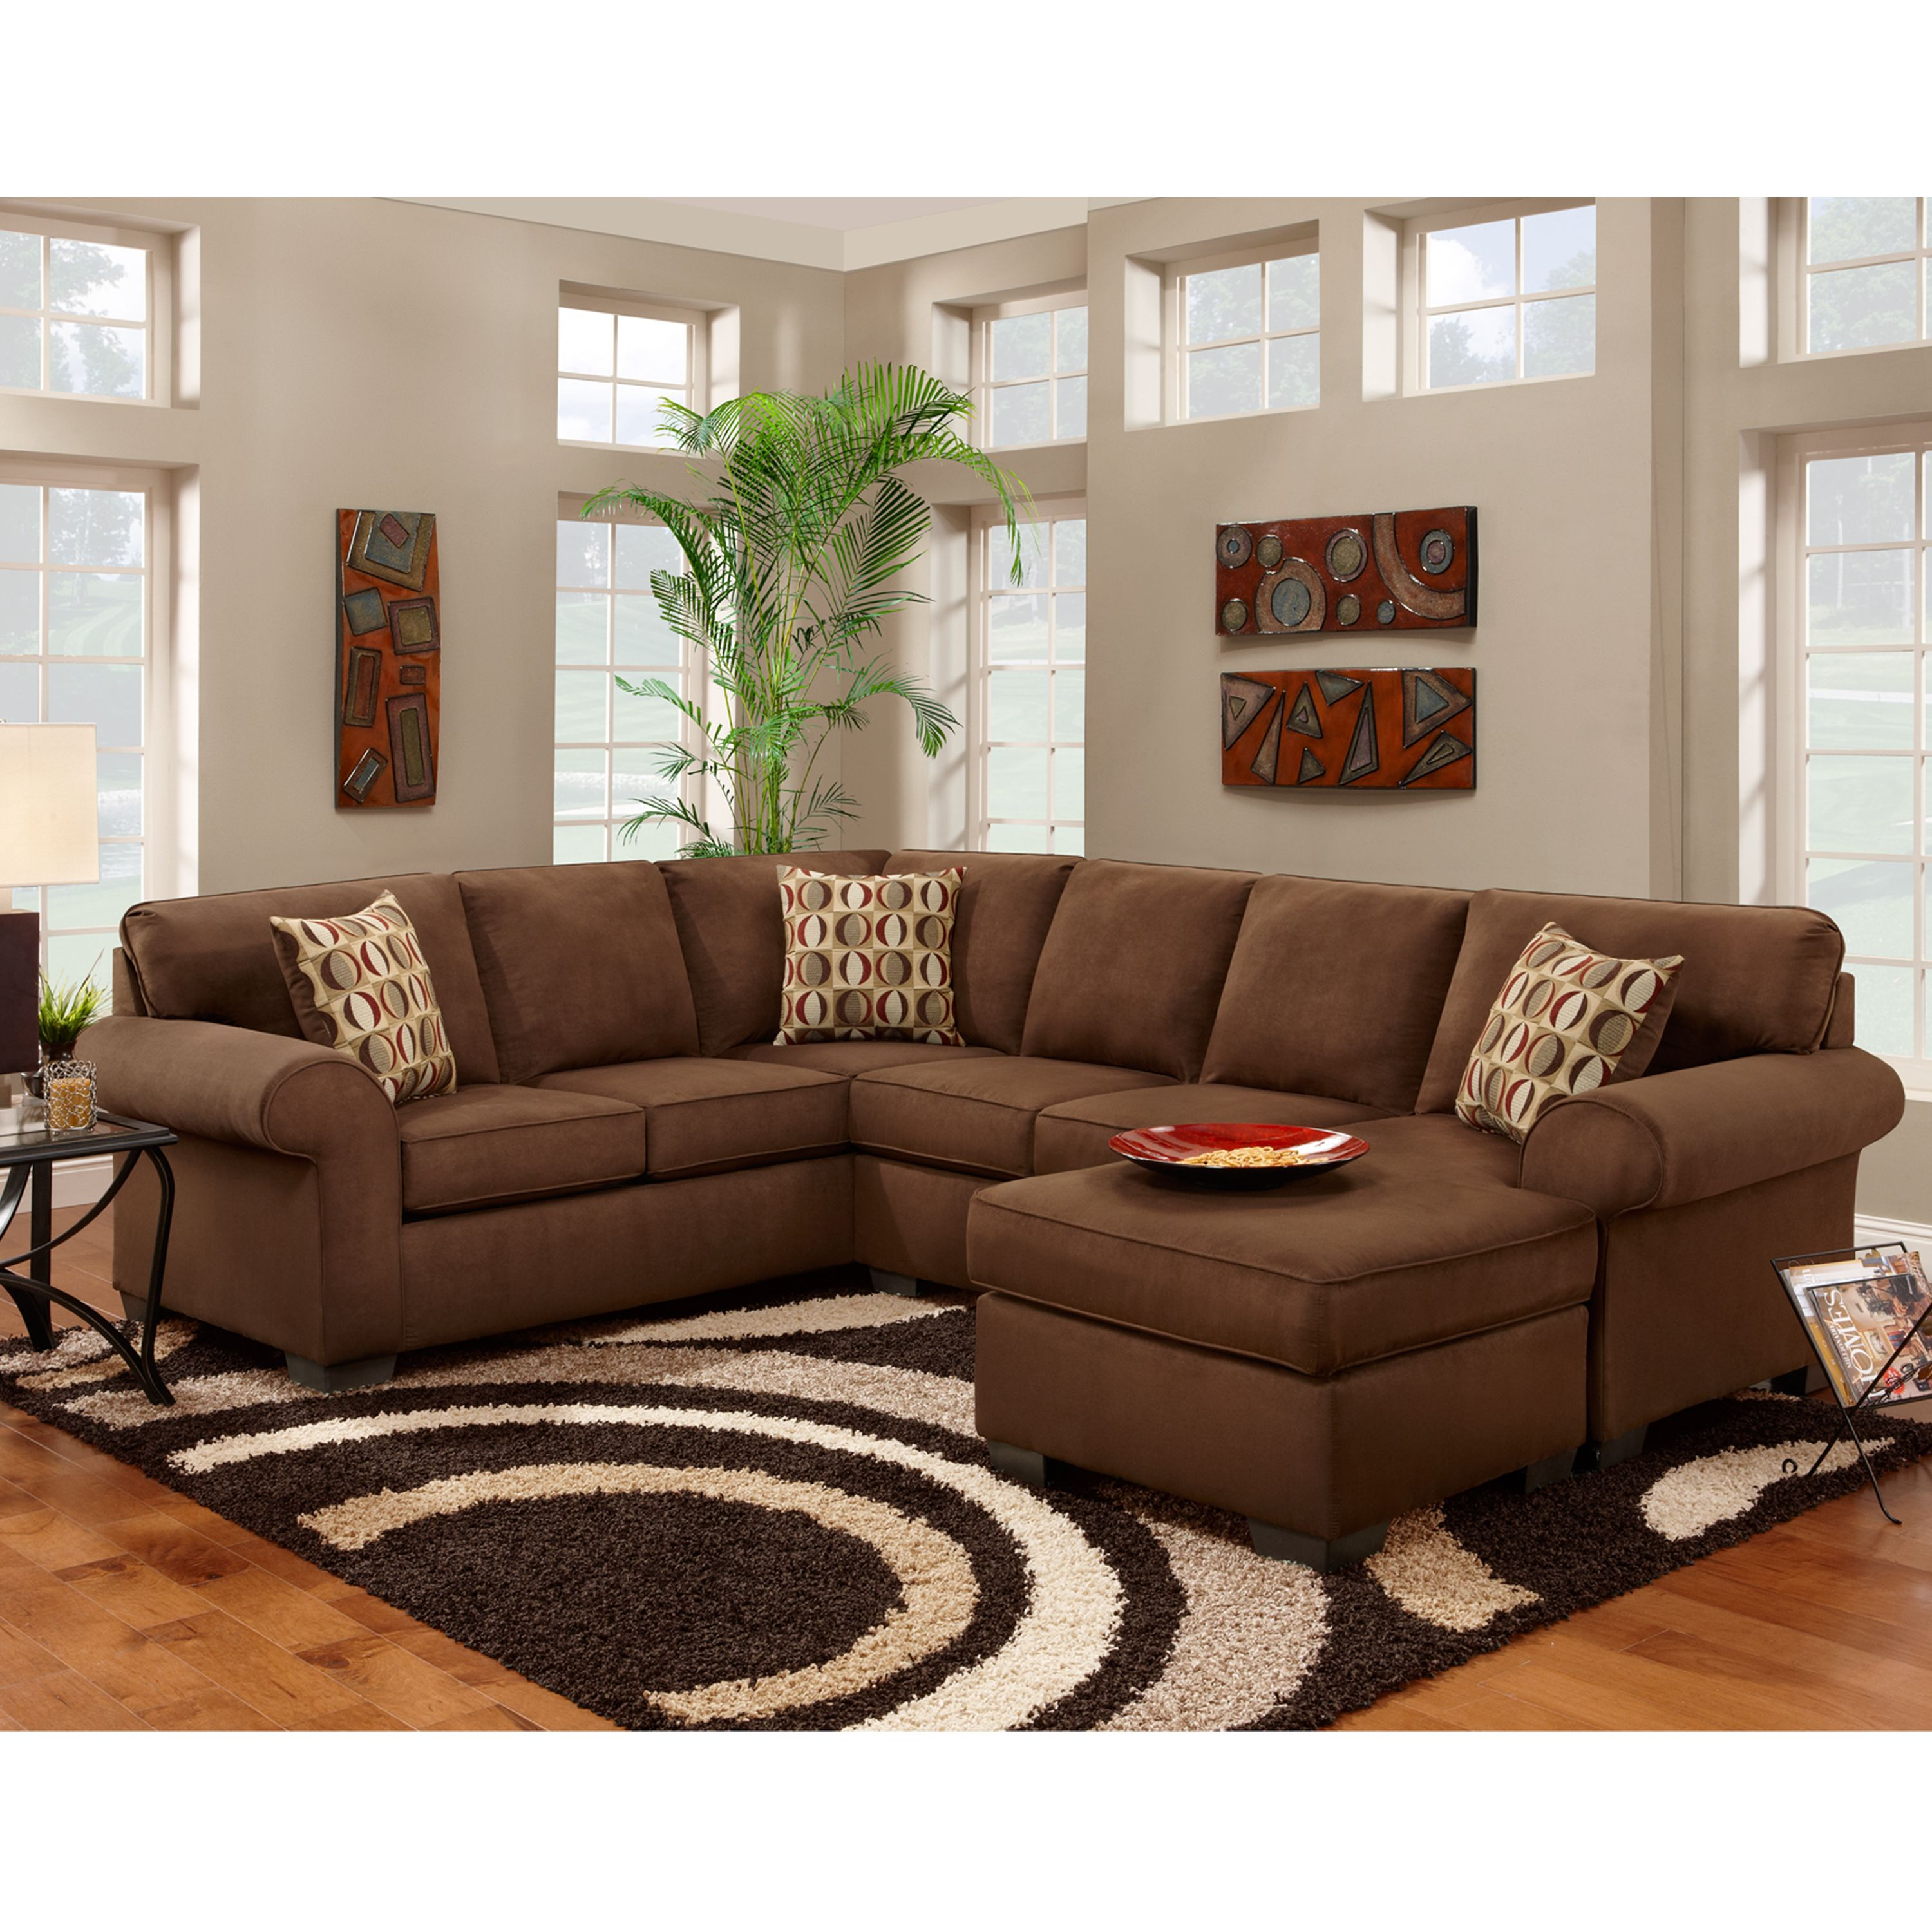 Overstock Com Online Shopping Bedding Furniture Electronics Jewelry Clothing More Sectional Sofa Couch Sectional Sofa U Shaped Sectional Sofa